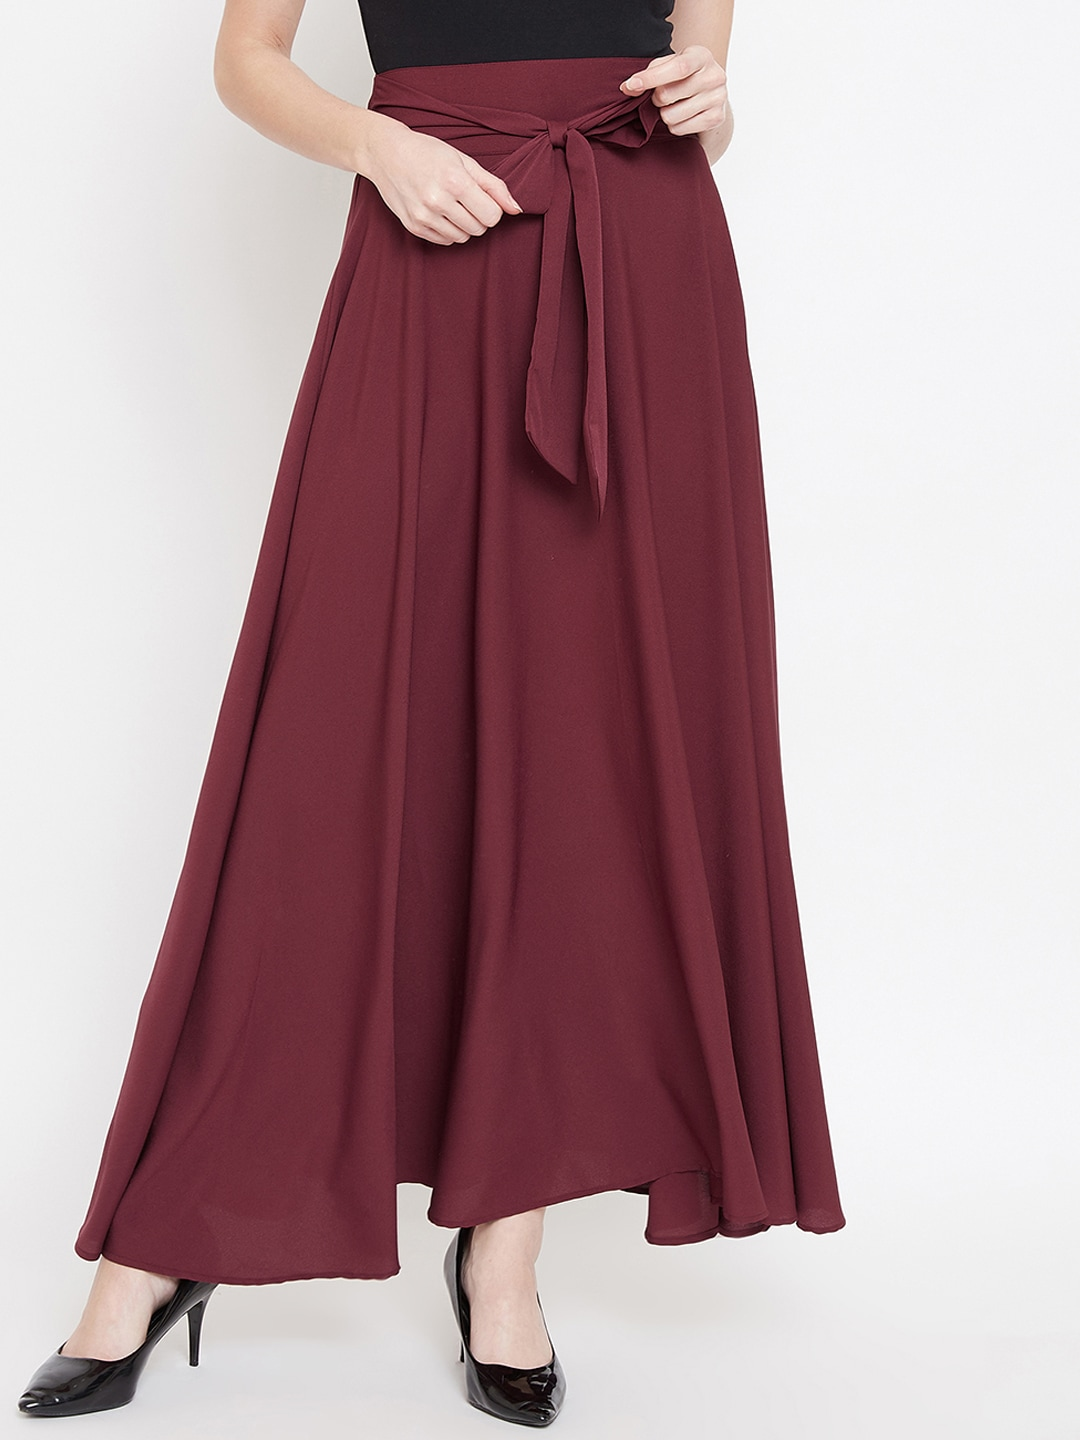 Berrylush Women Maroon Solid Flared Maxi Skirt